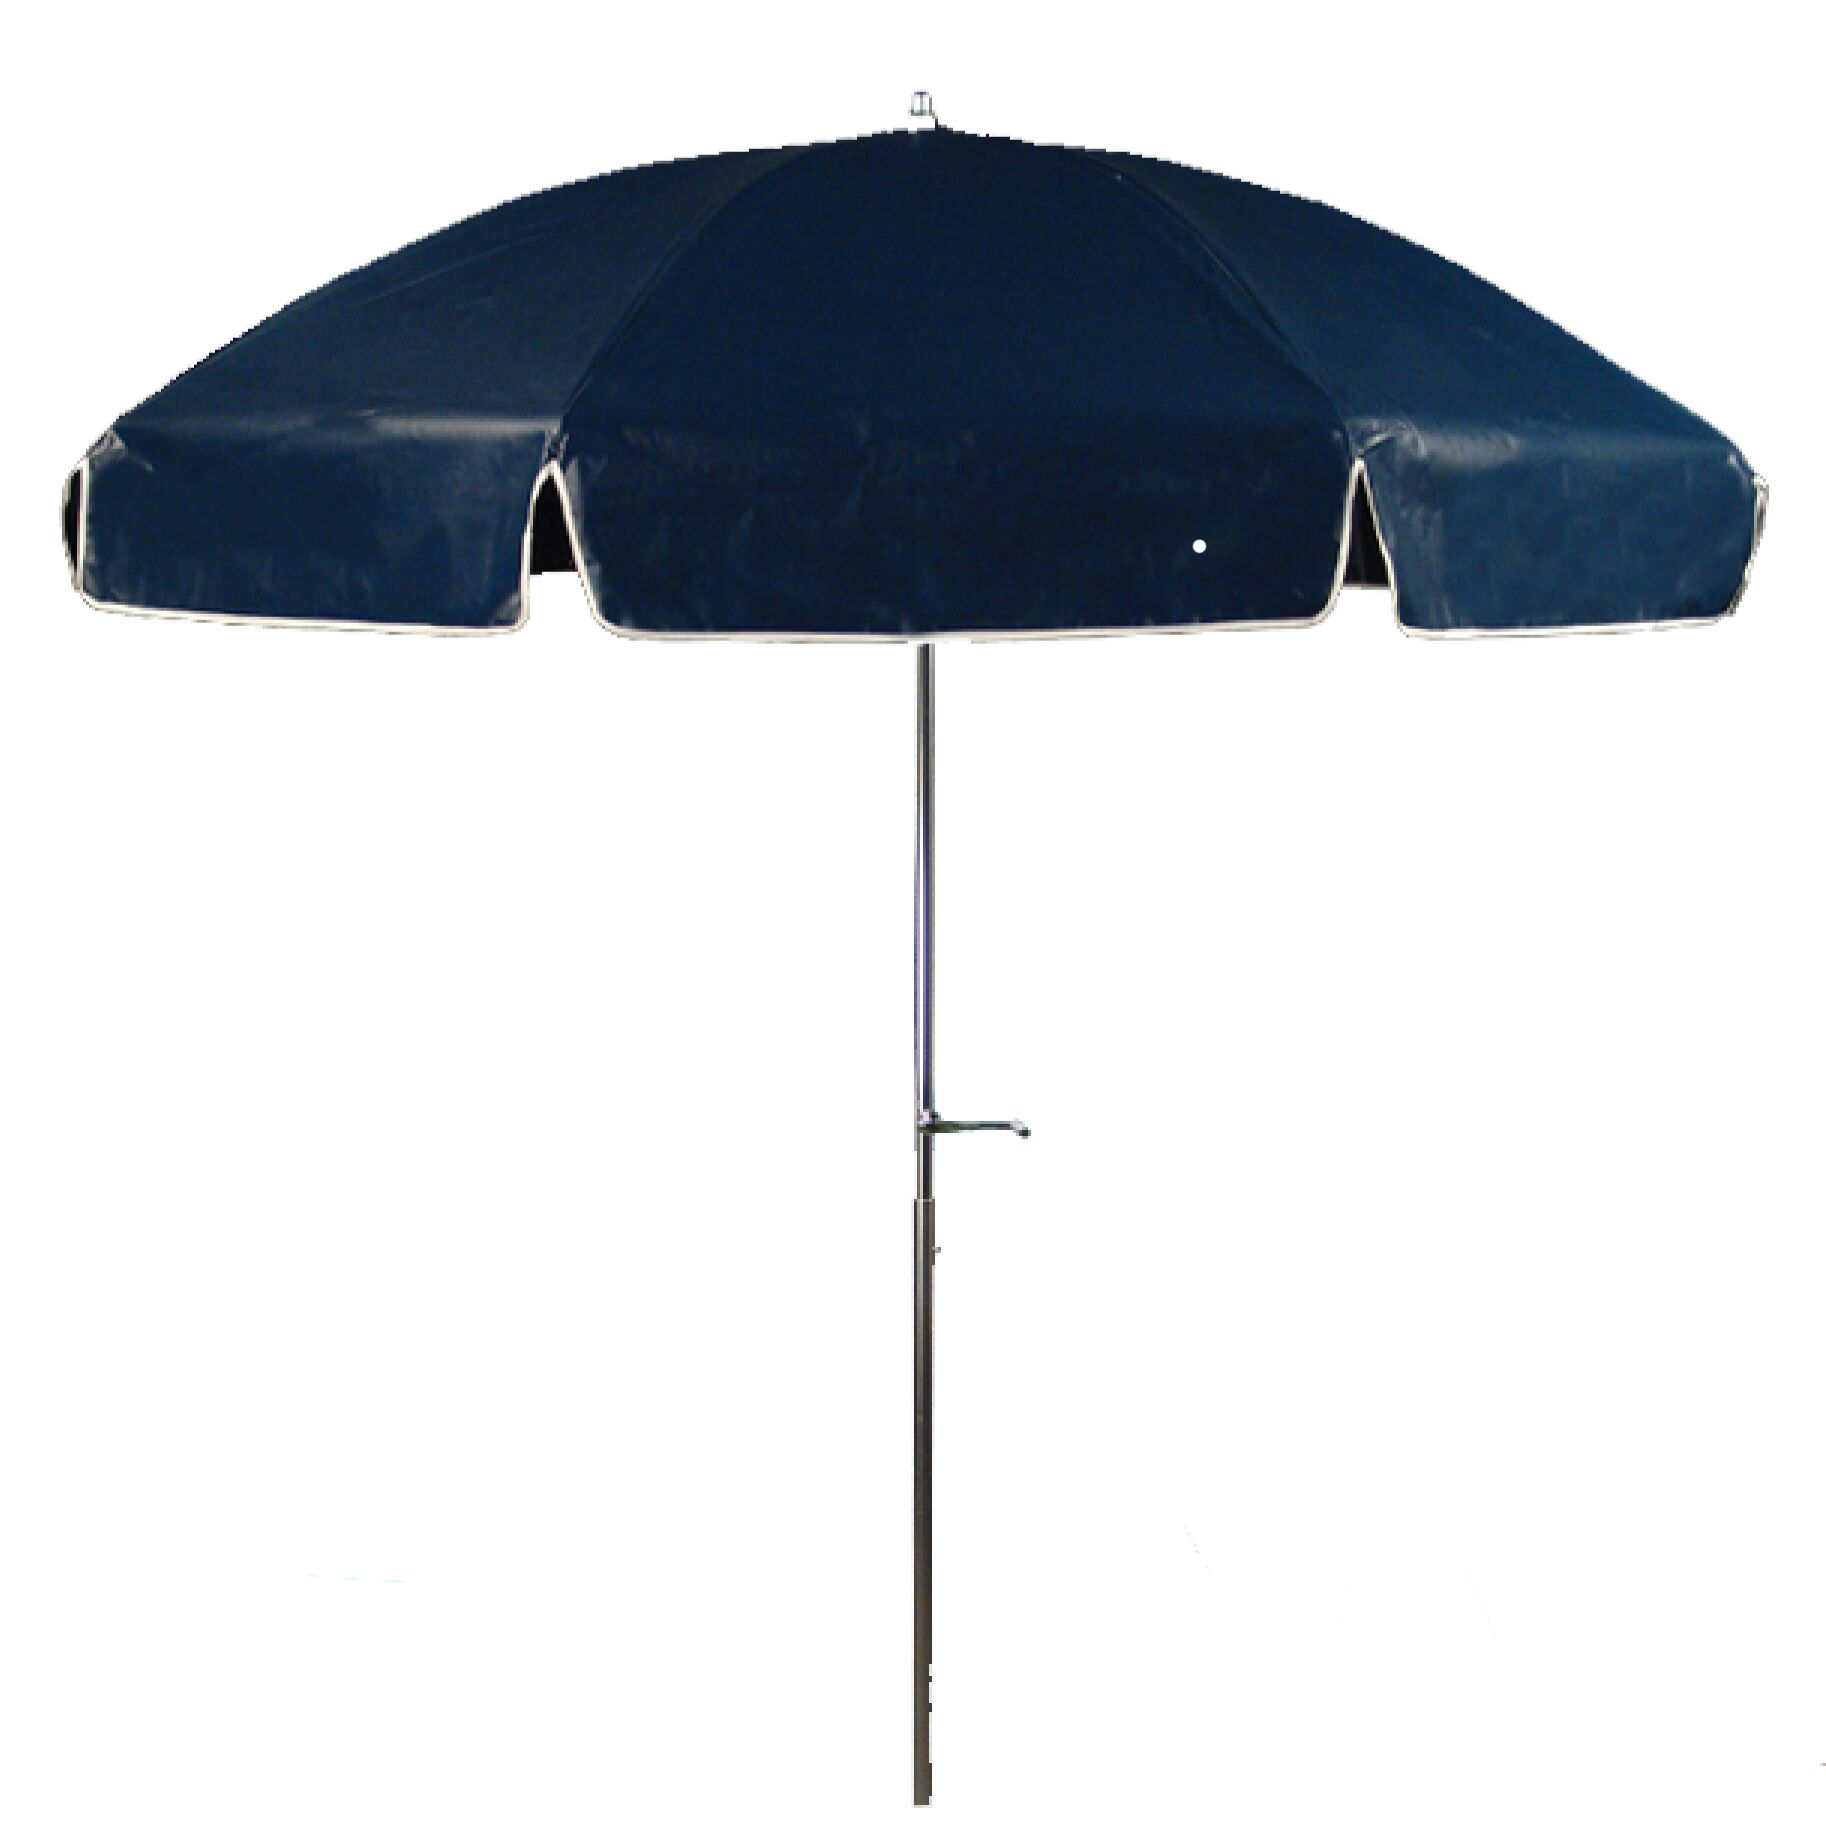 7.5' Beach Umbrella Fabric: Navy Blue